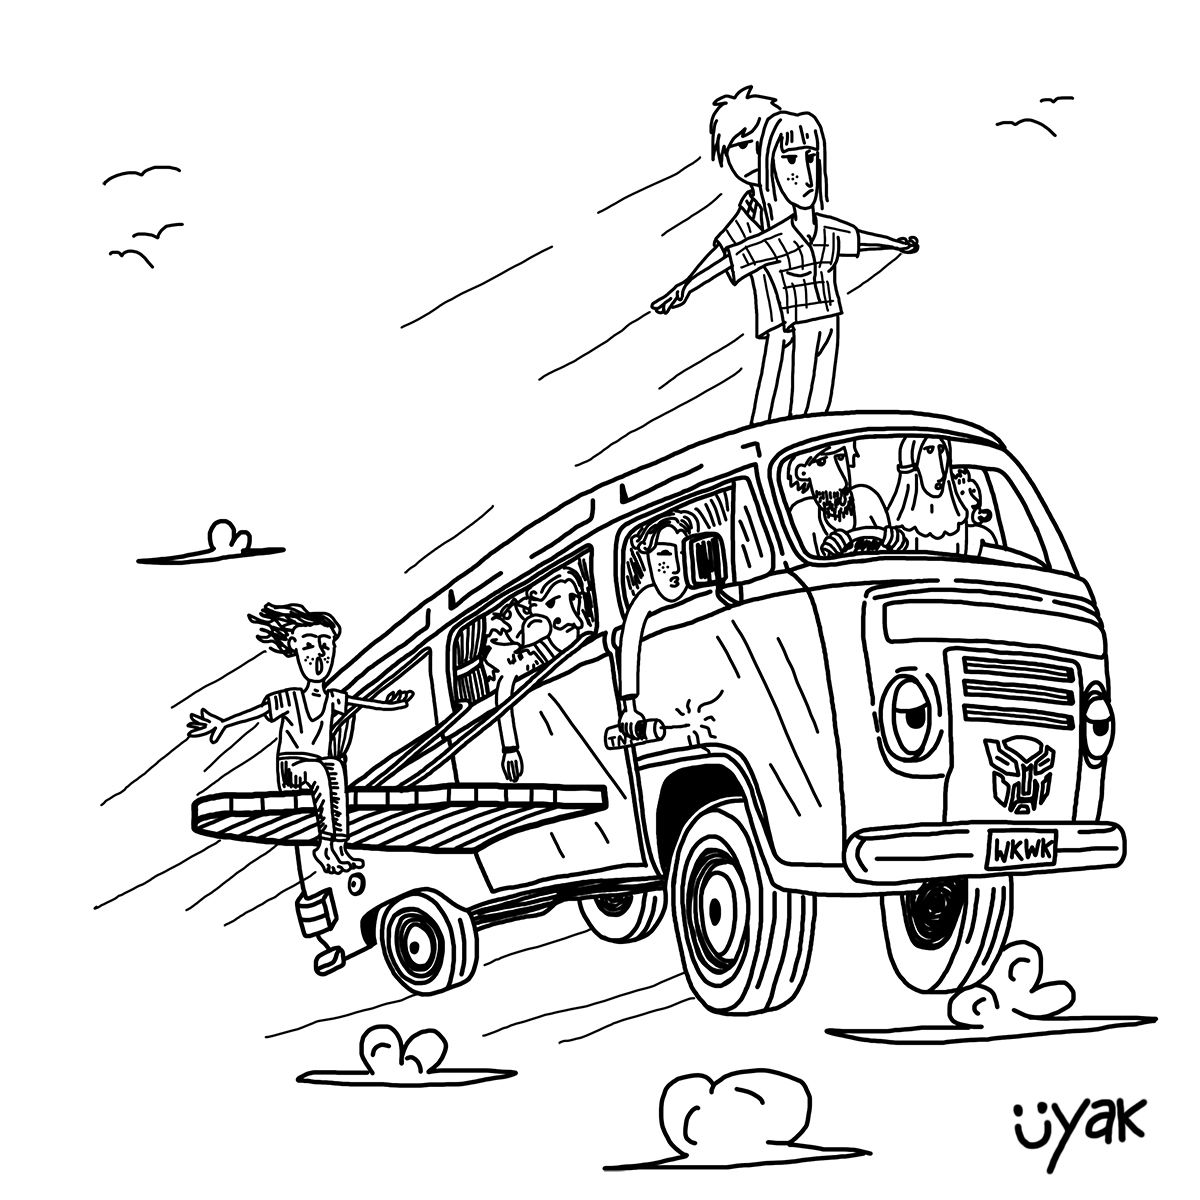 When The Traffic Jam Arrived It S Simple Just Go Fly Away Hahahaha Illustration Cartoon Drawing Character Futuristic Transportation